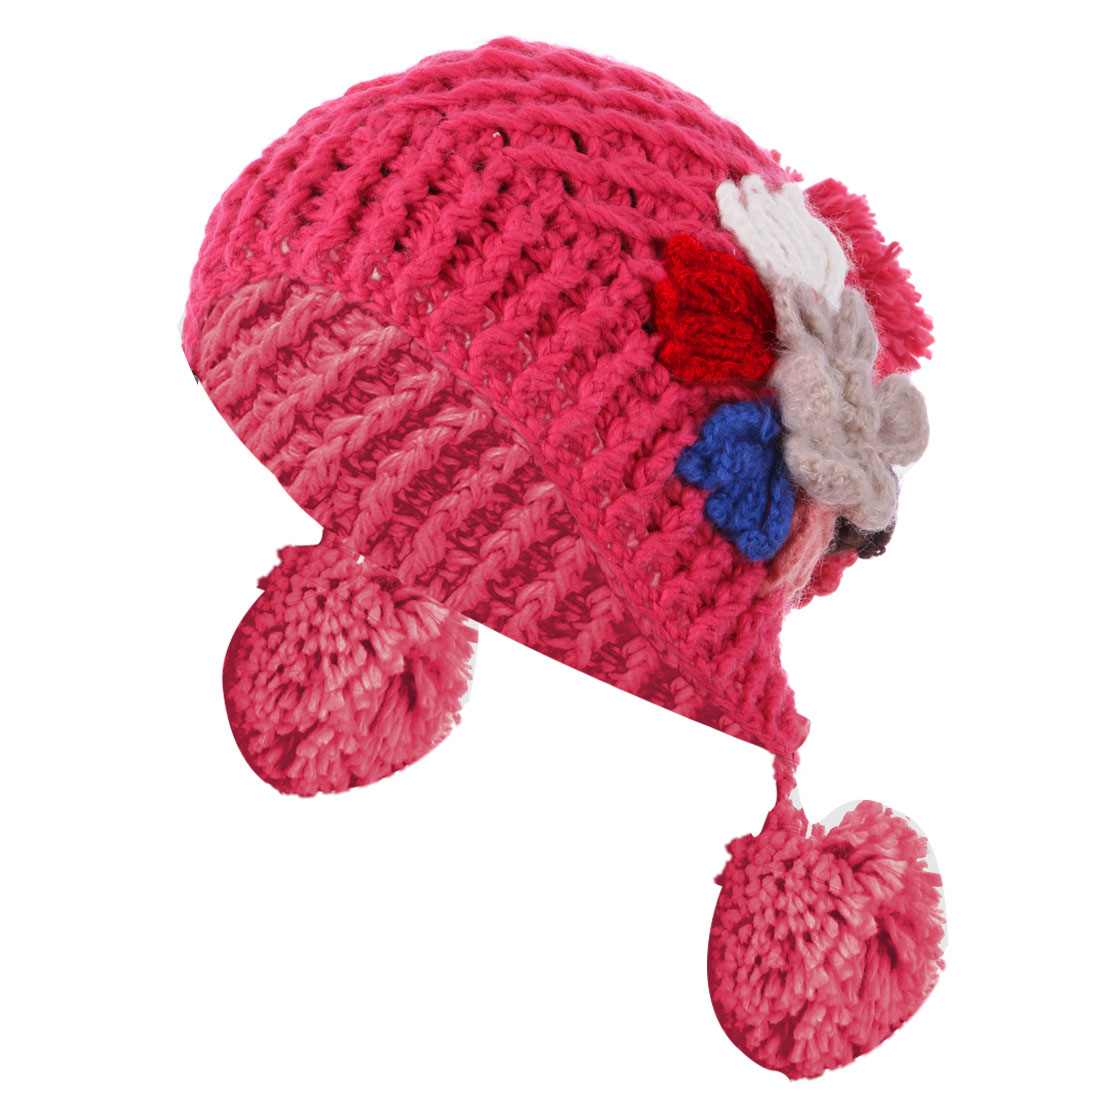 YM-23 Woman Chic Colorful Crochet Flower Decor 3 Pom-Pom...